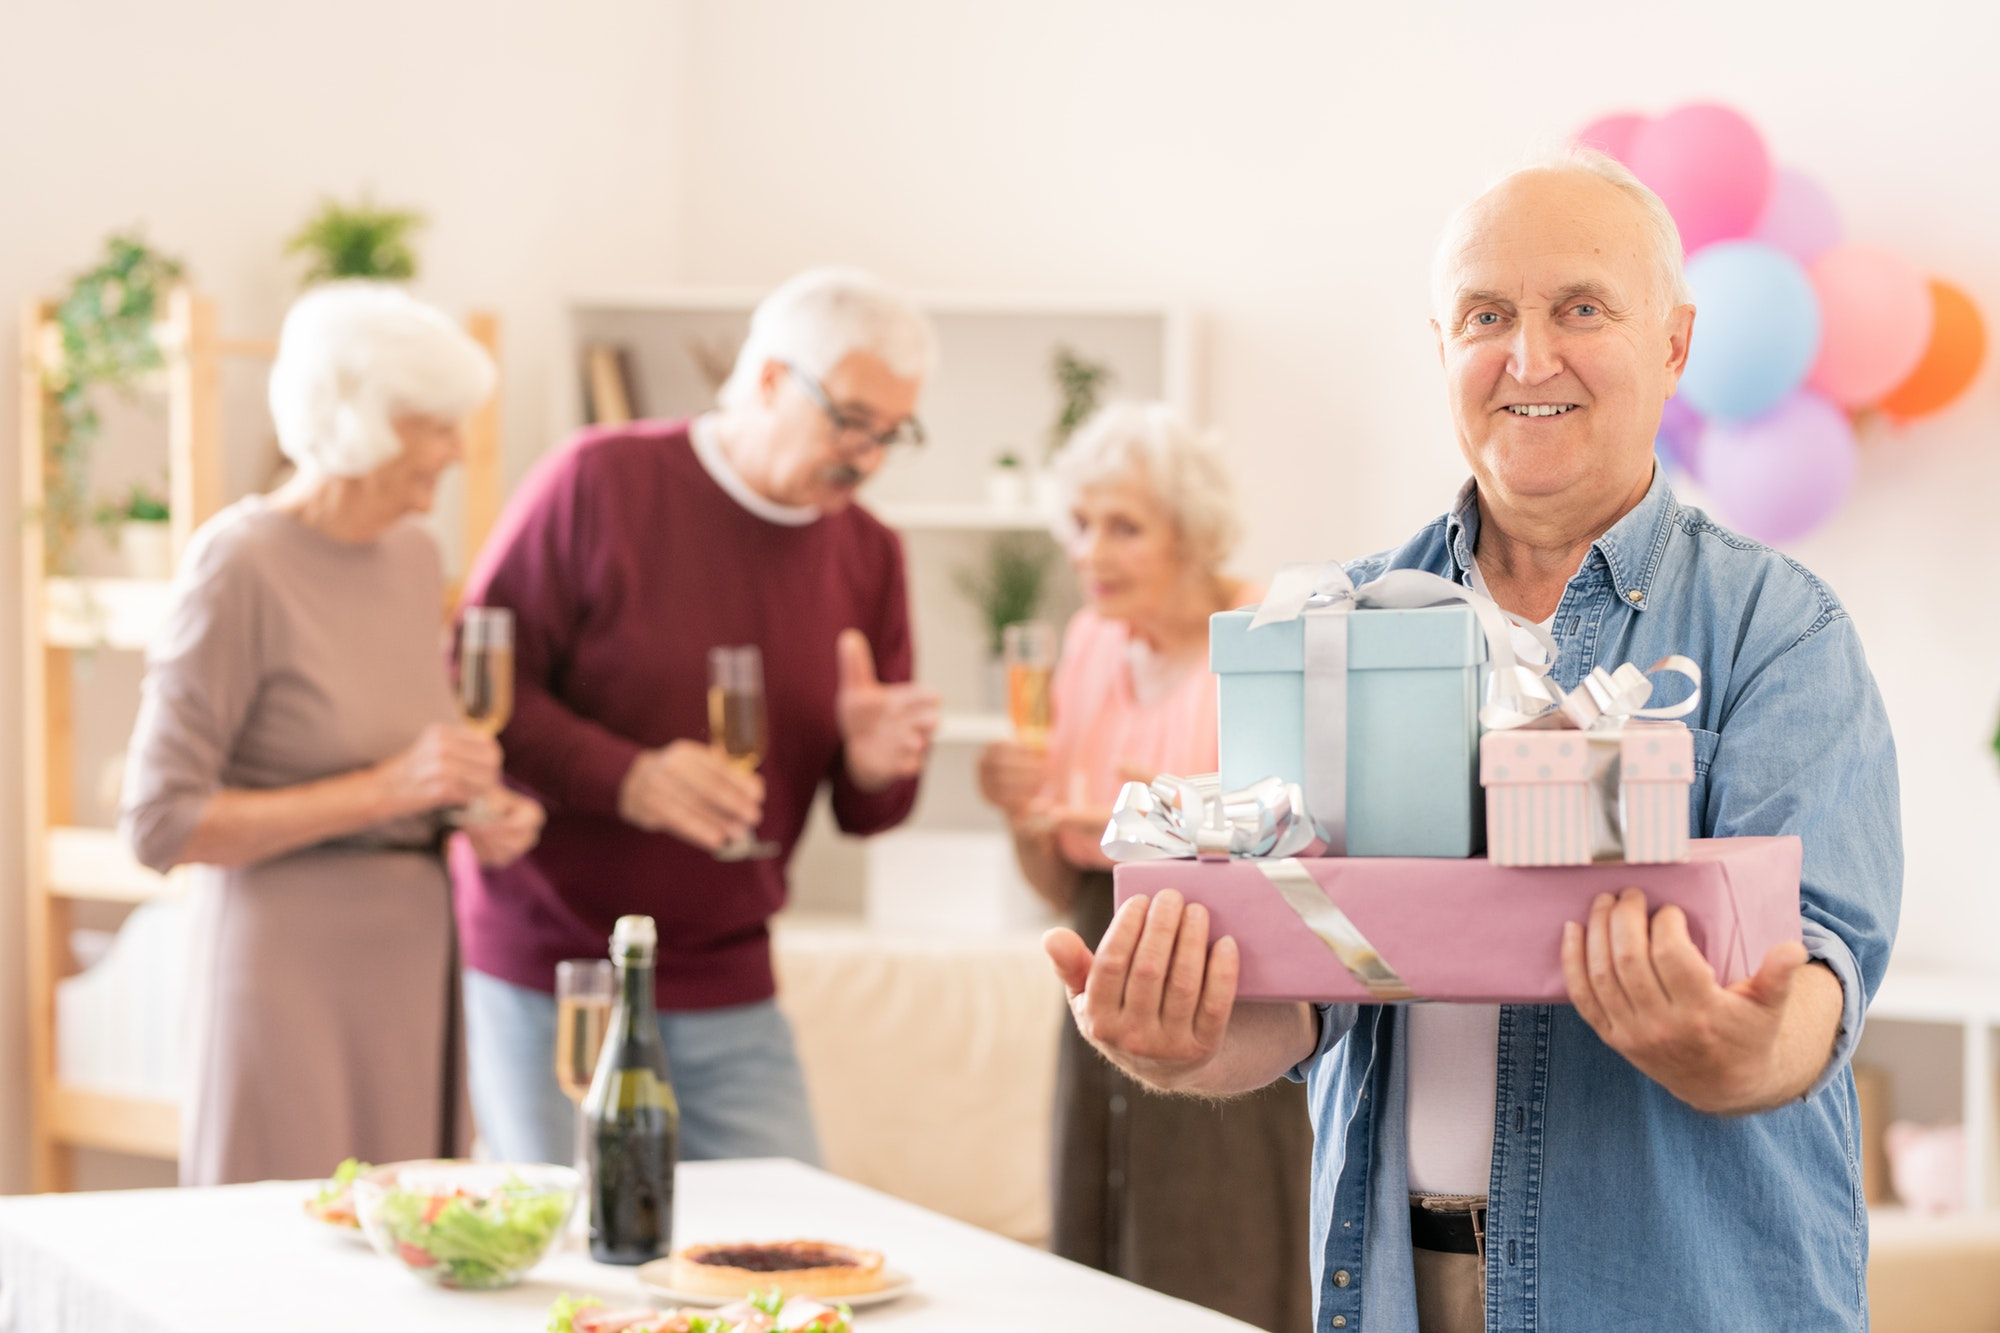 Senior smiling man with several packed gifts